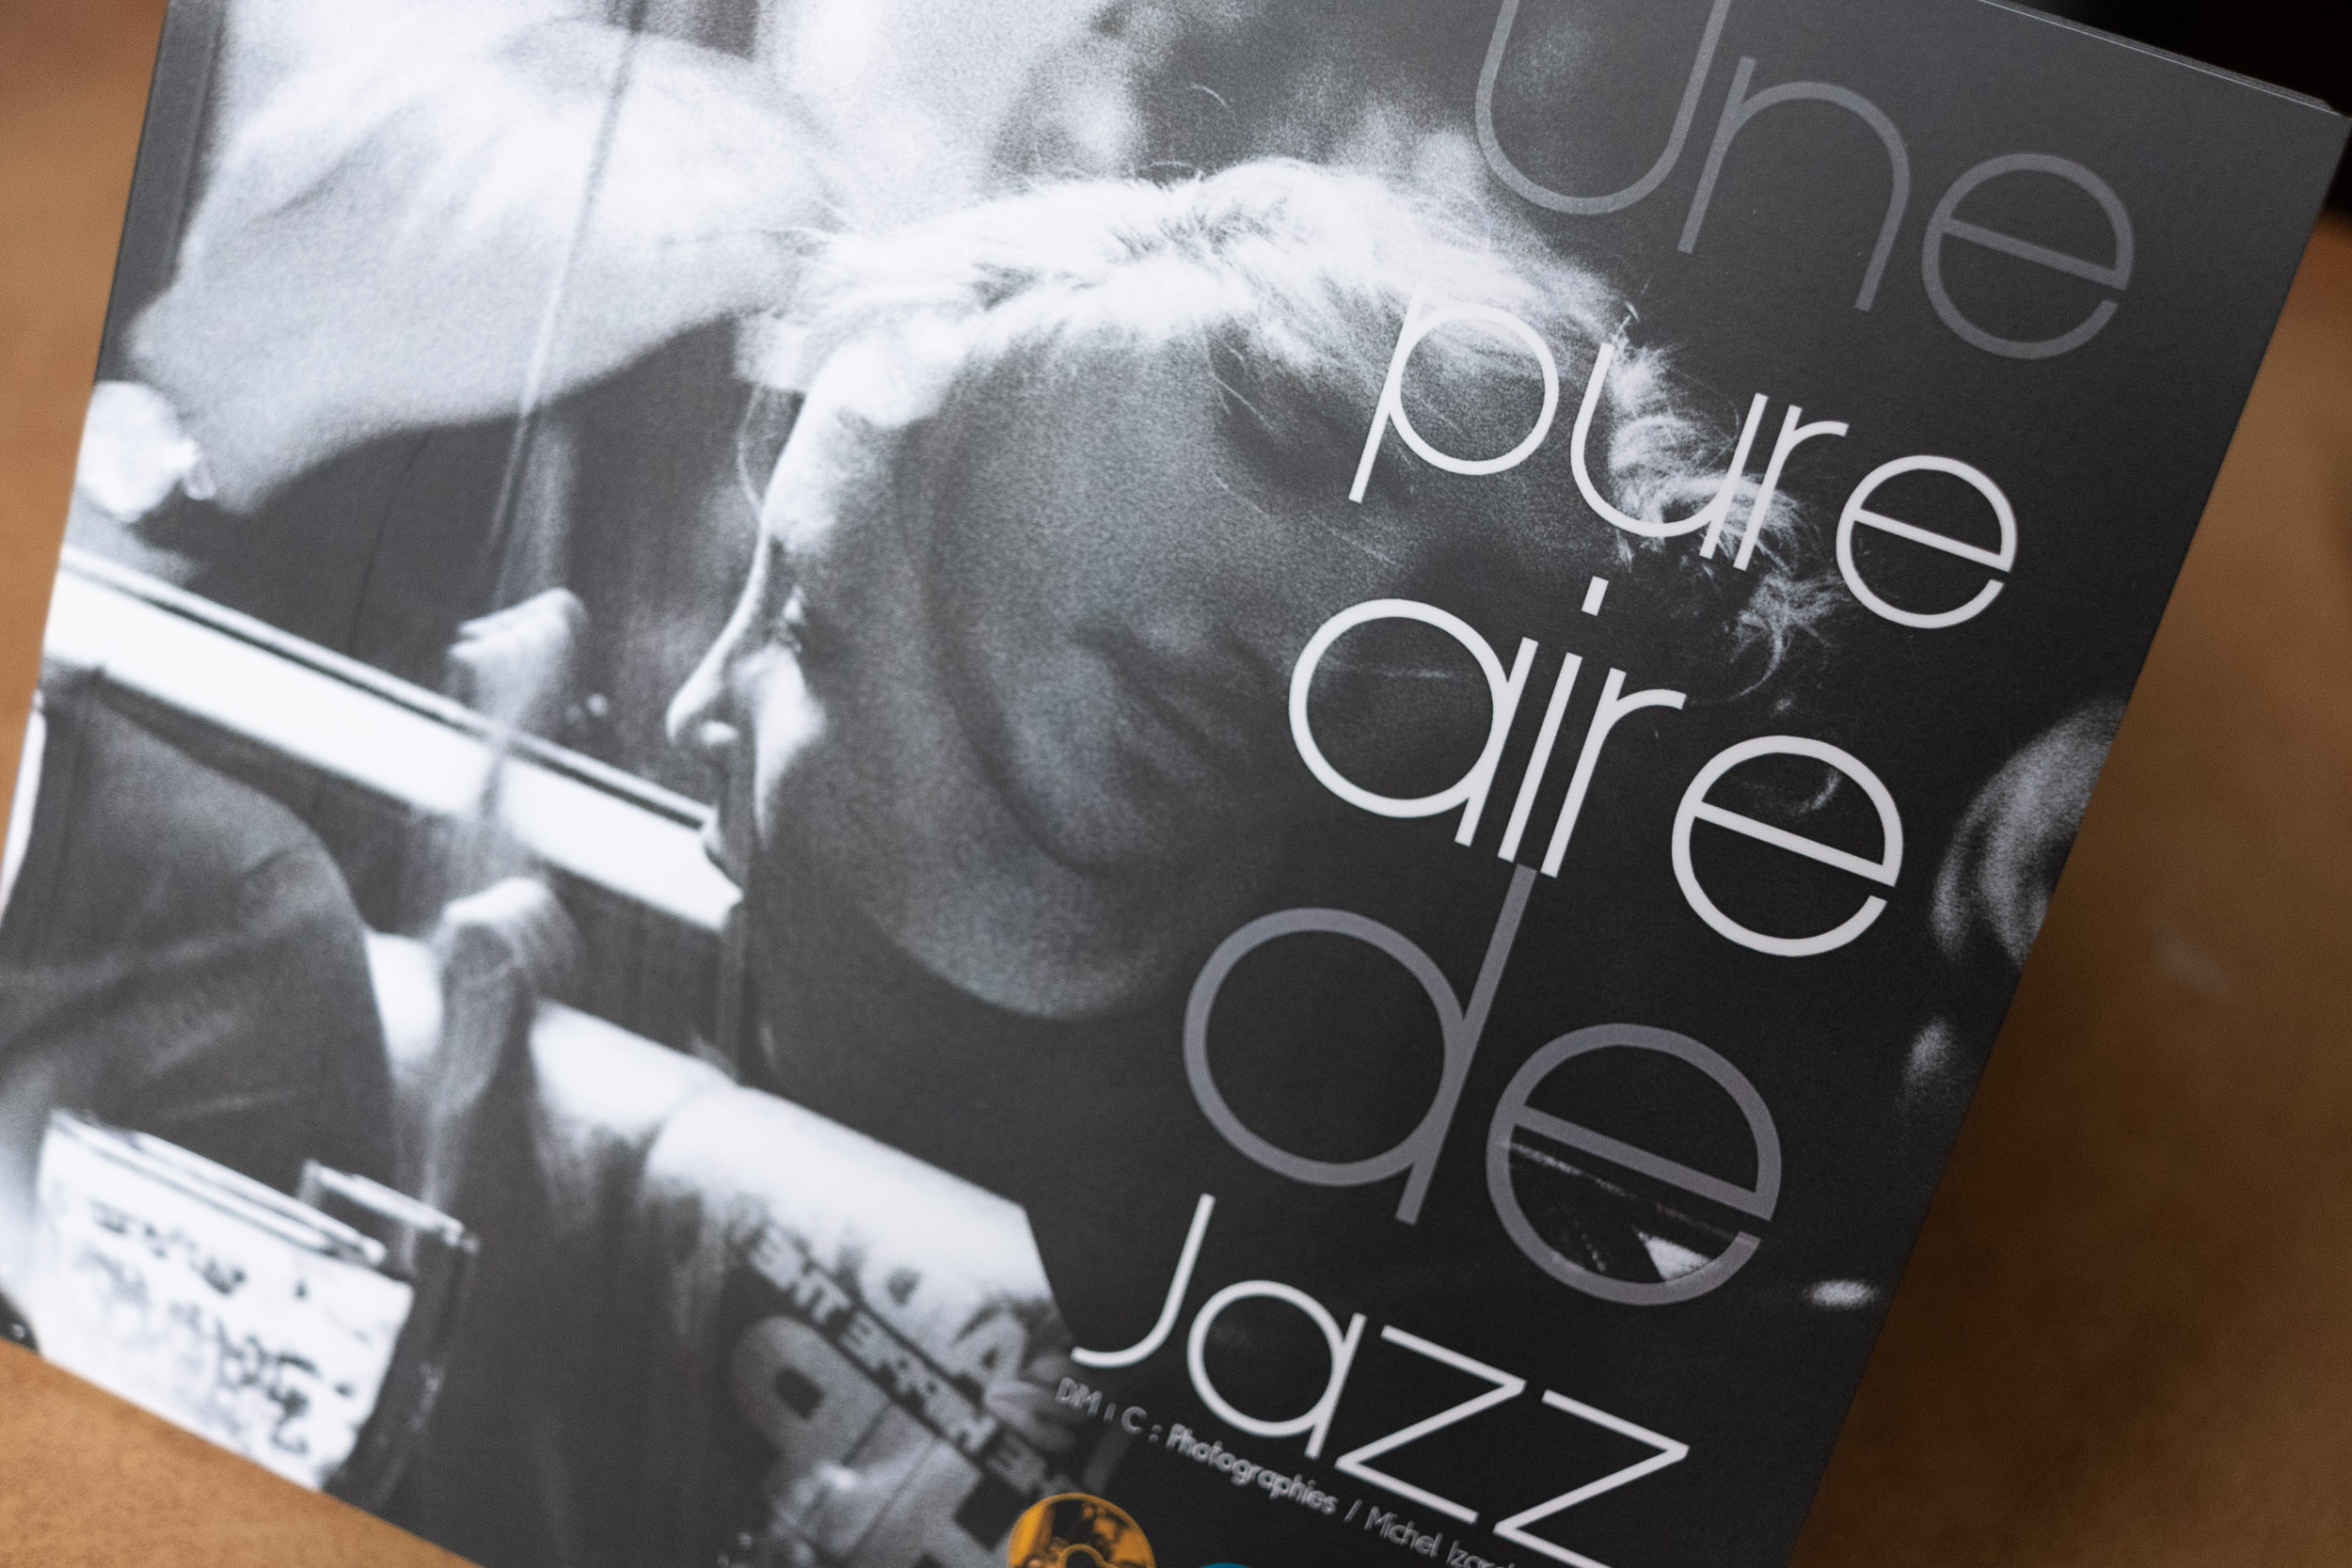 DiMiCoLoGy-A book - Une pure aire de jazz - by DIMICOLOGY-0426.jpg